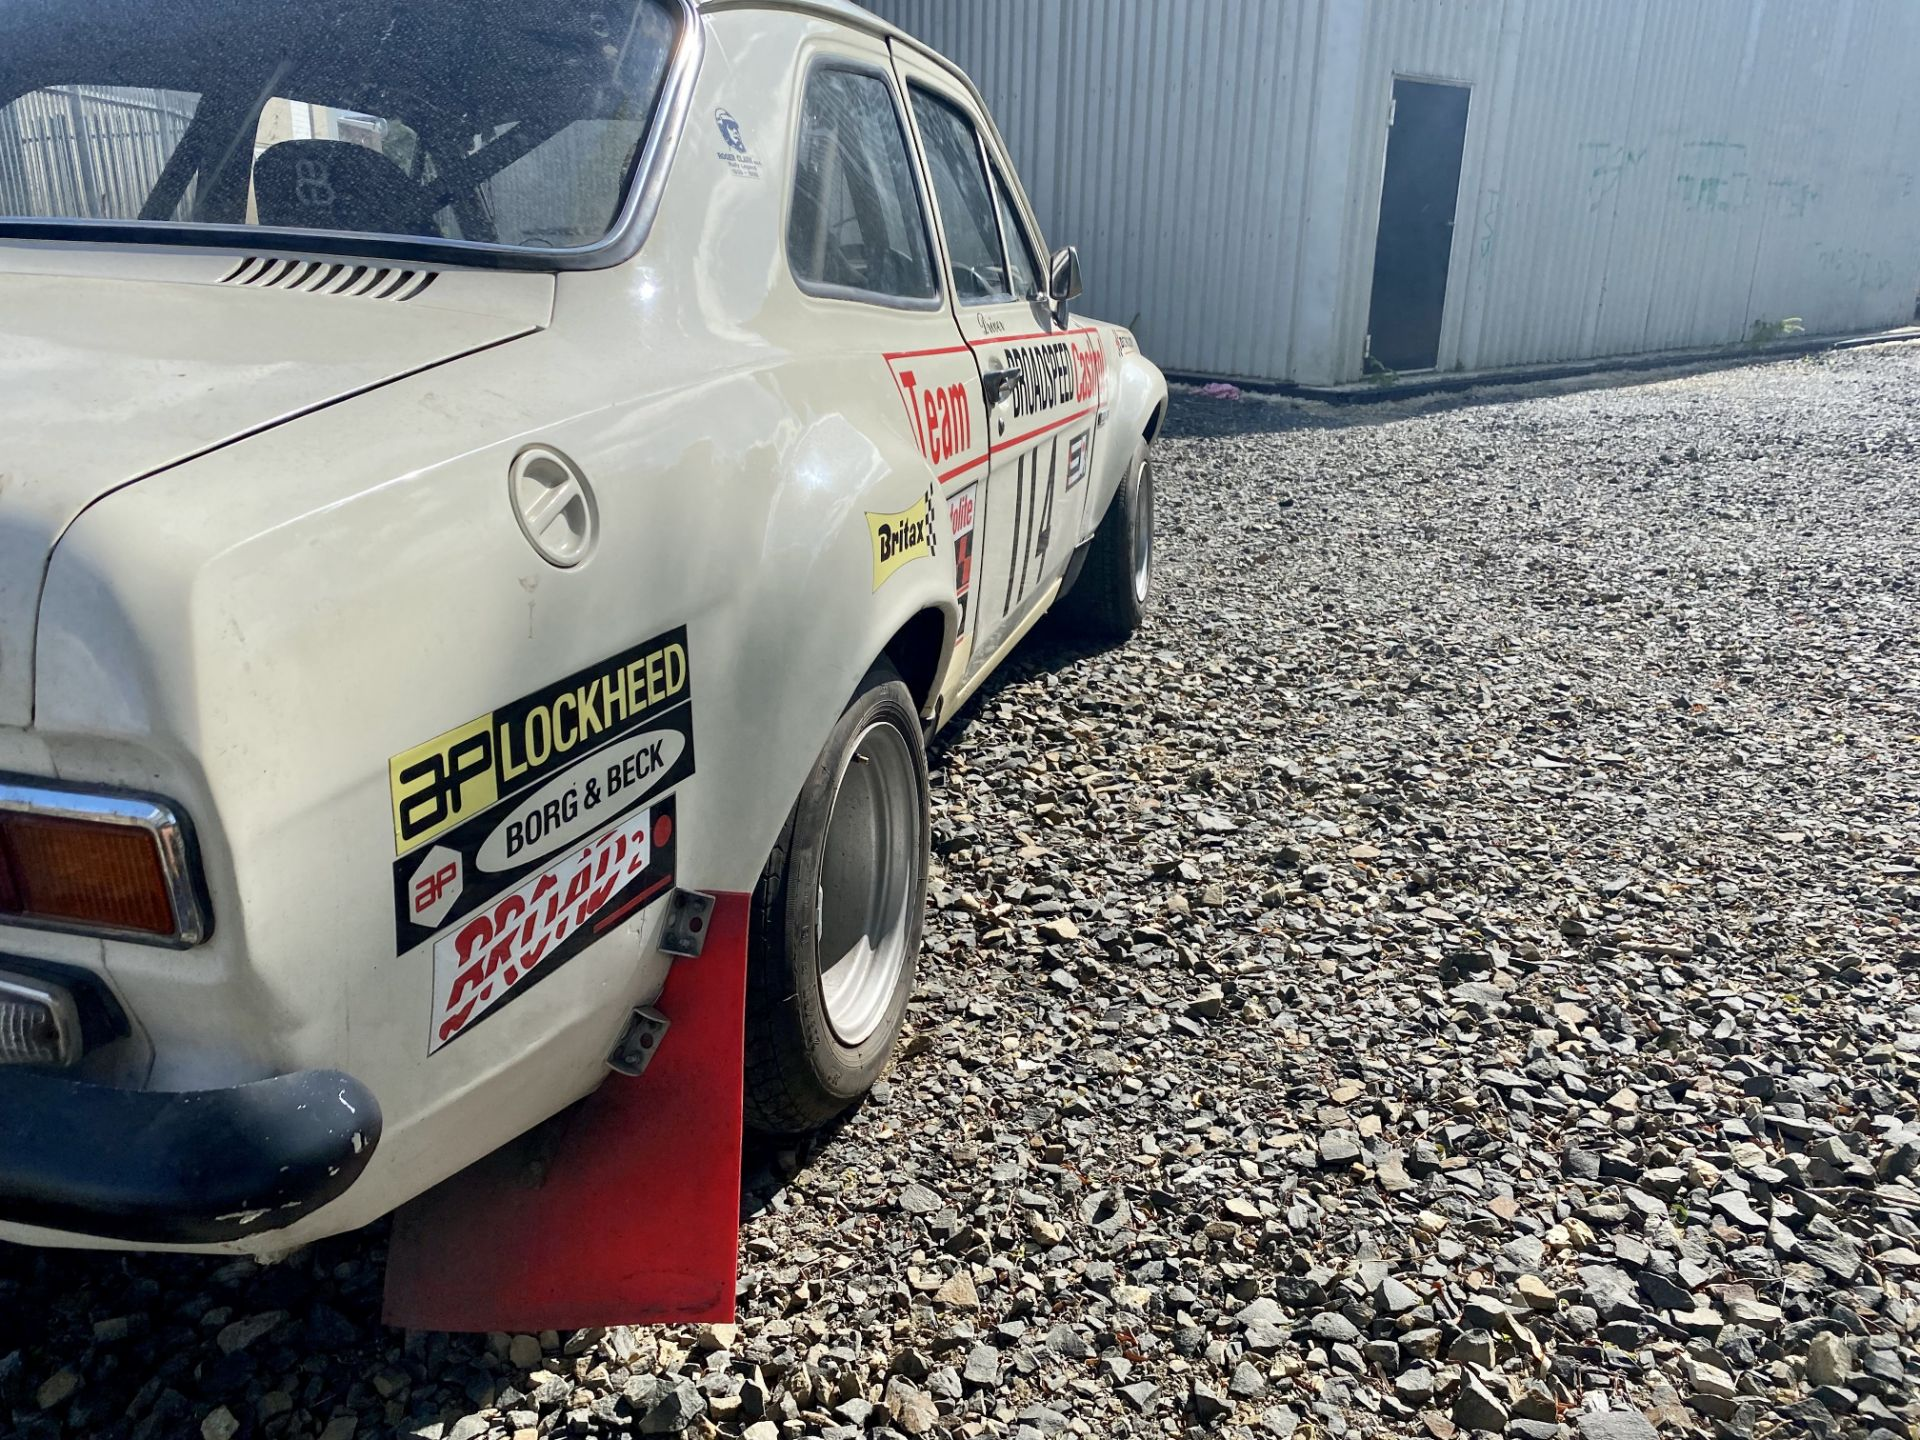 Ford Escort Mexico - Image 28 of 51